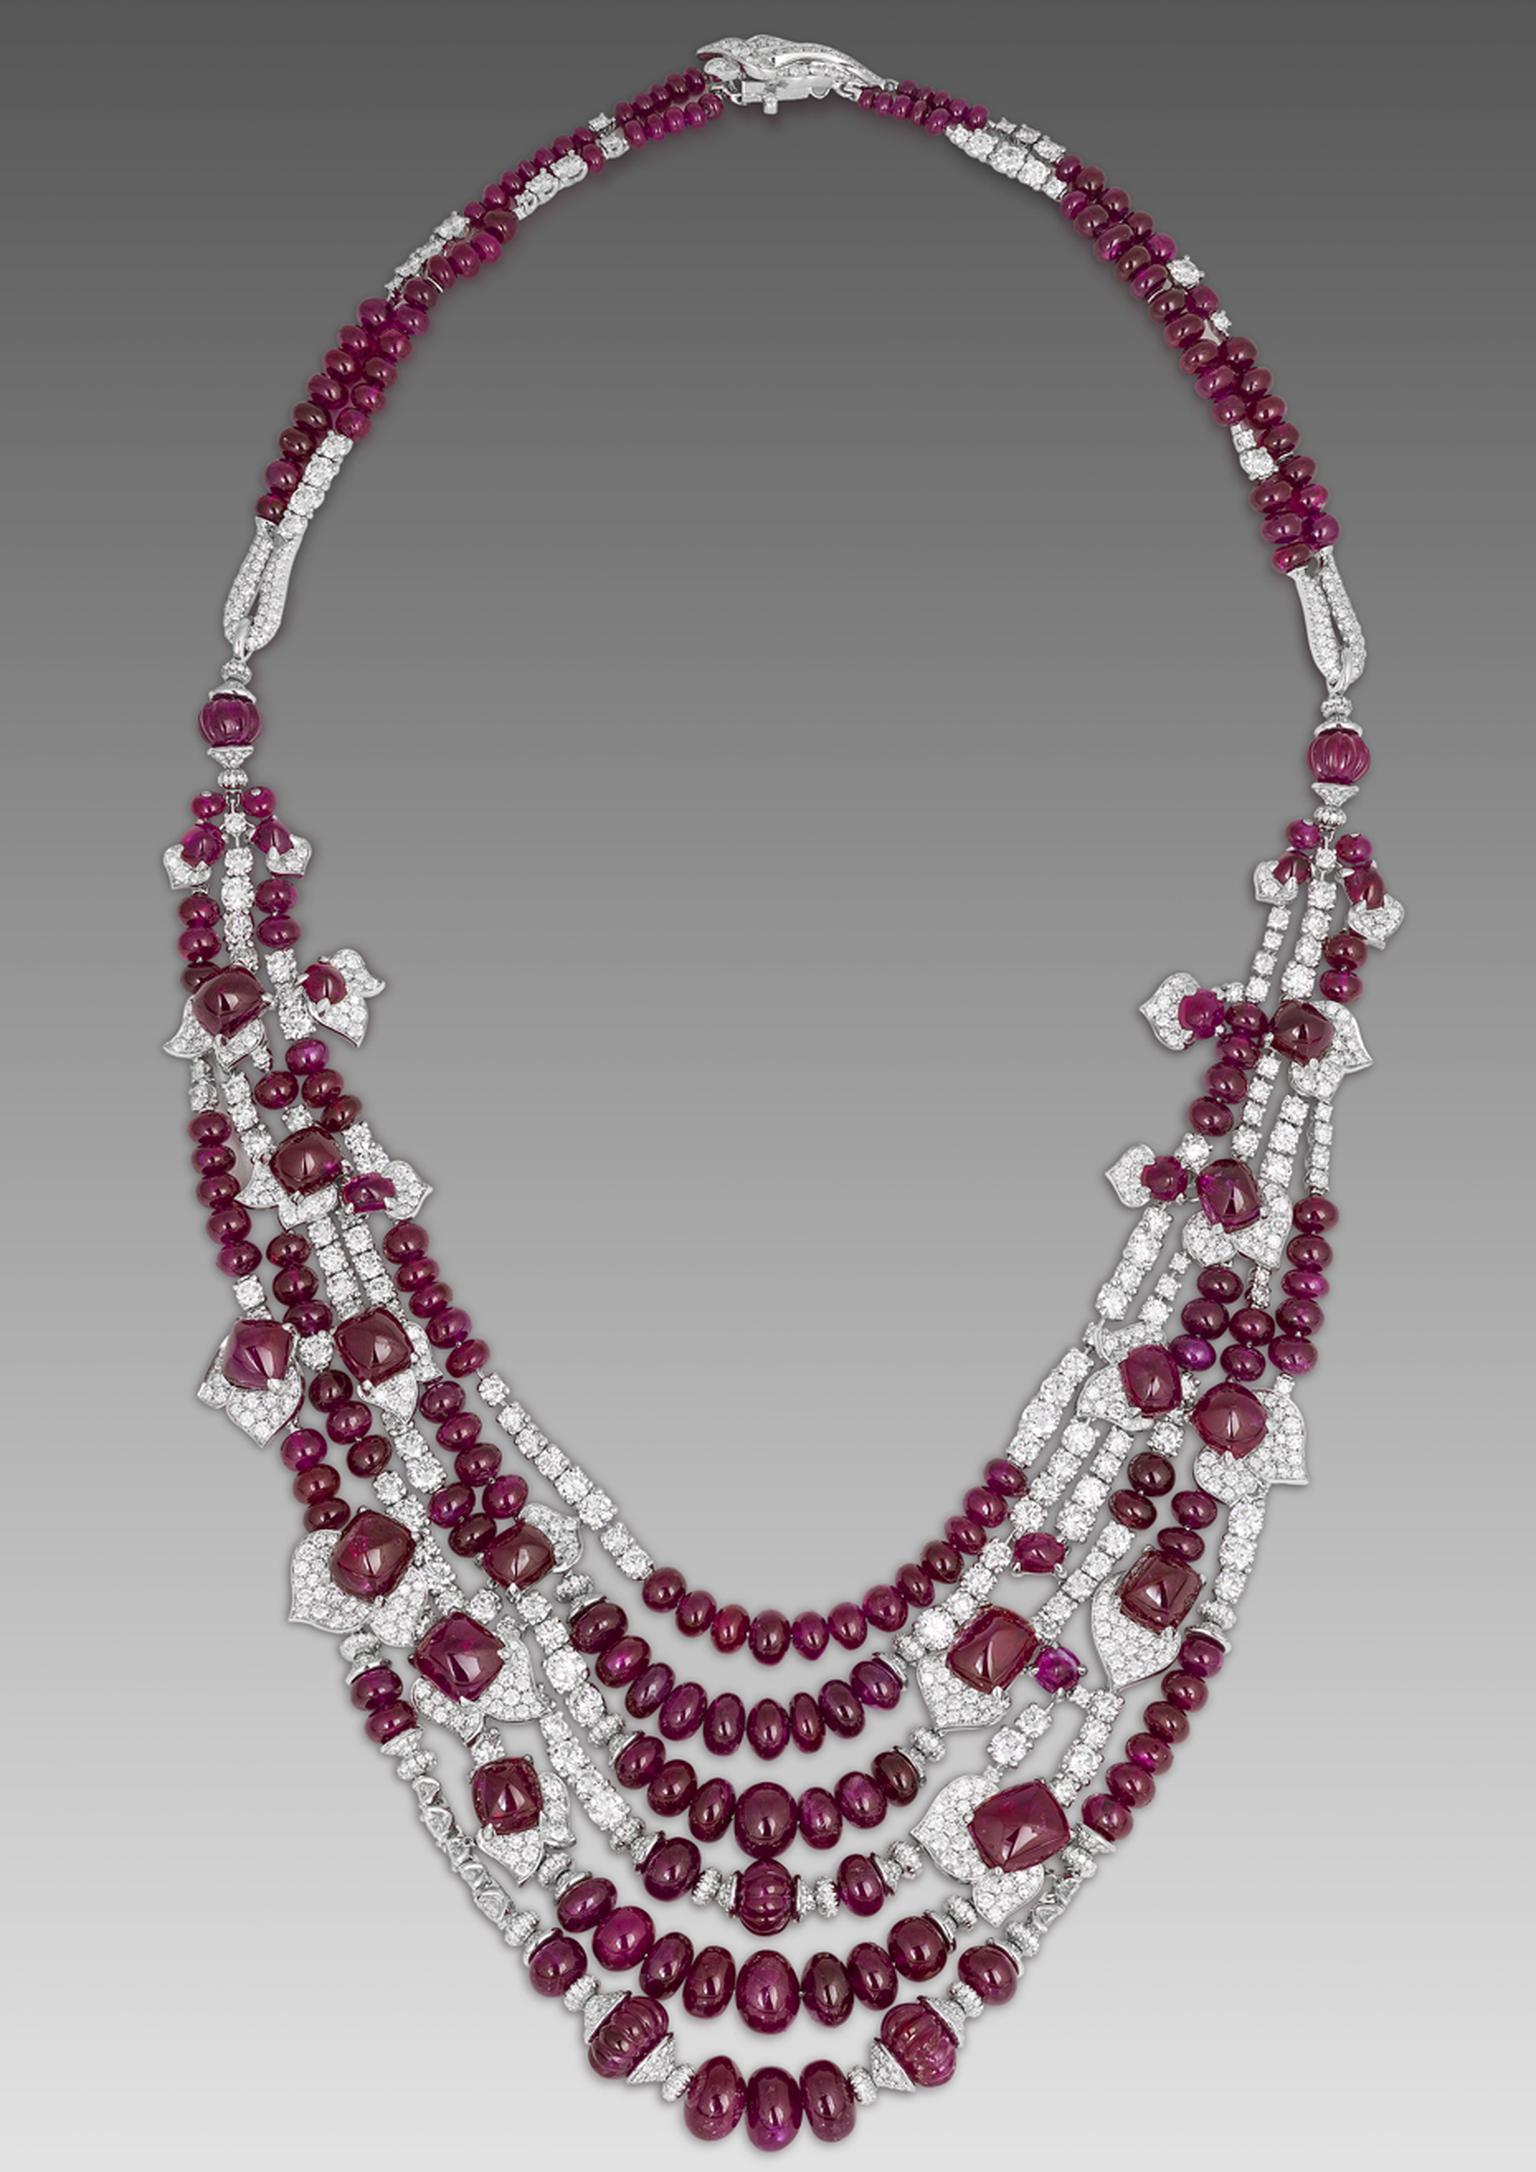 David Morris Burmese ruby and diamond necklace featuring ruby cabochons and beads.